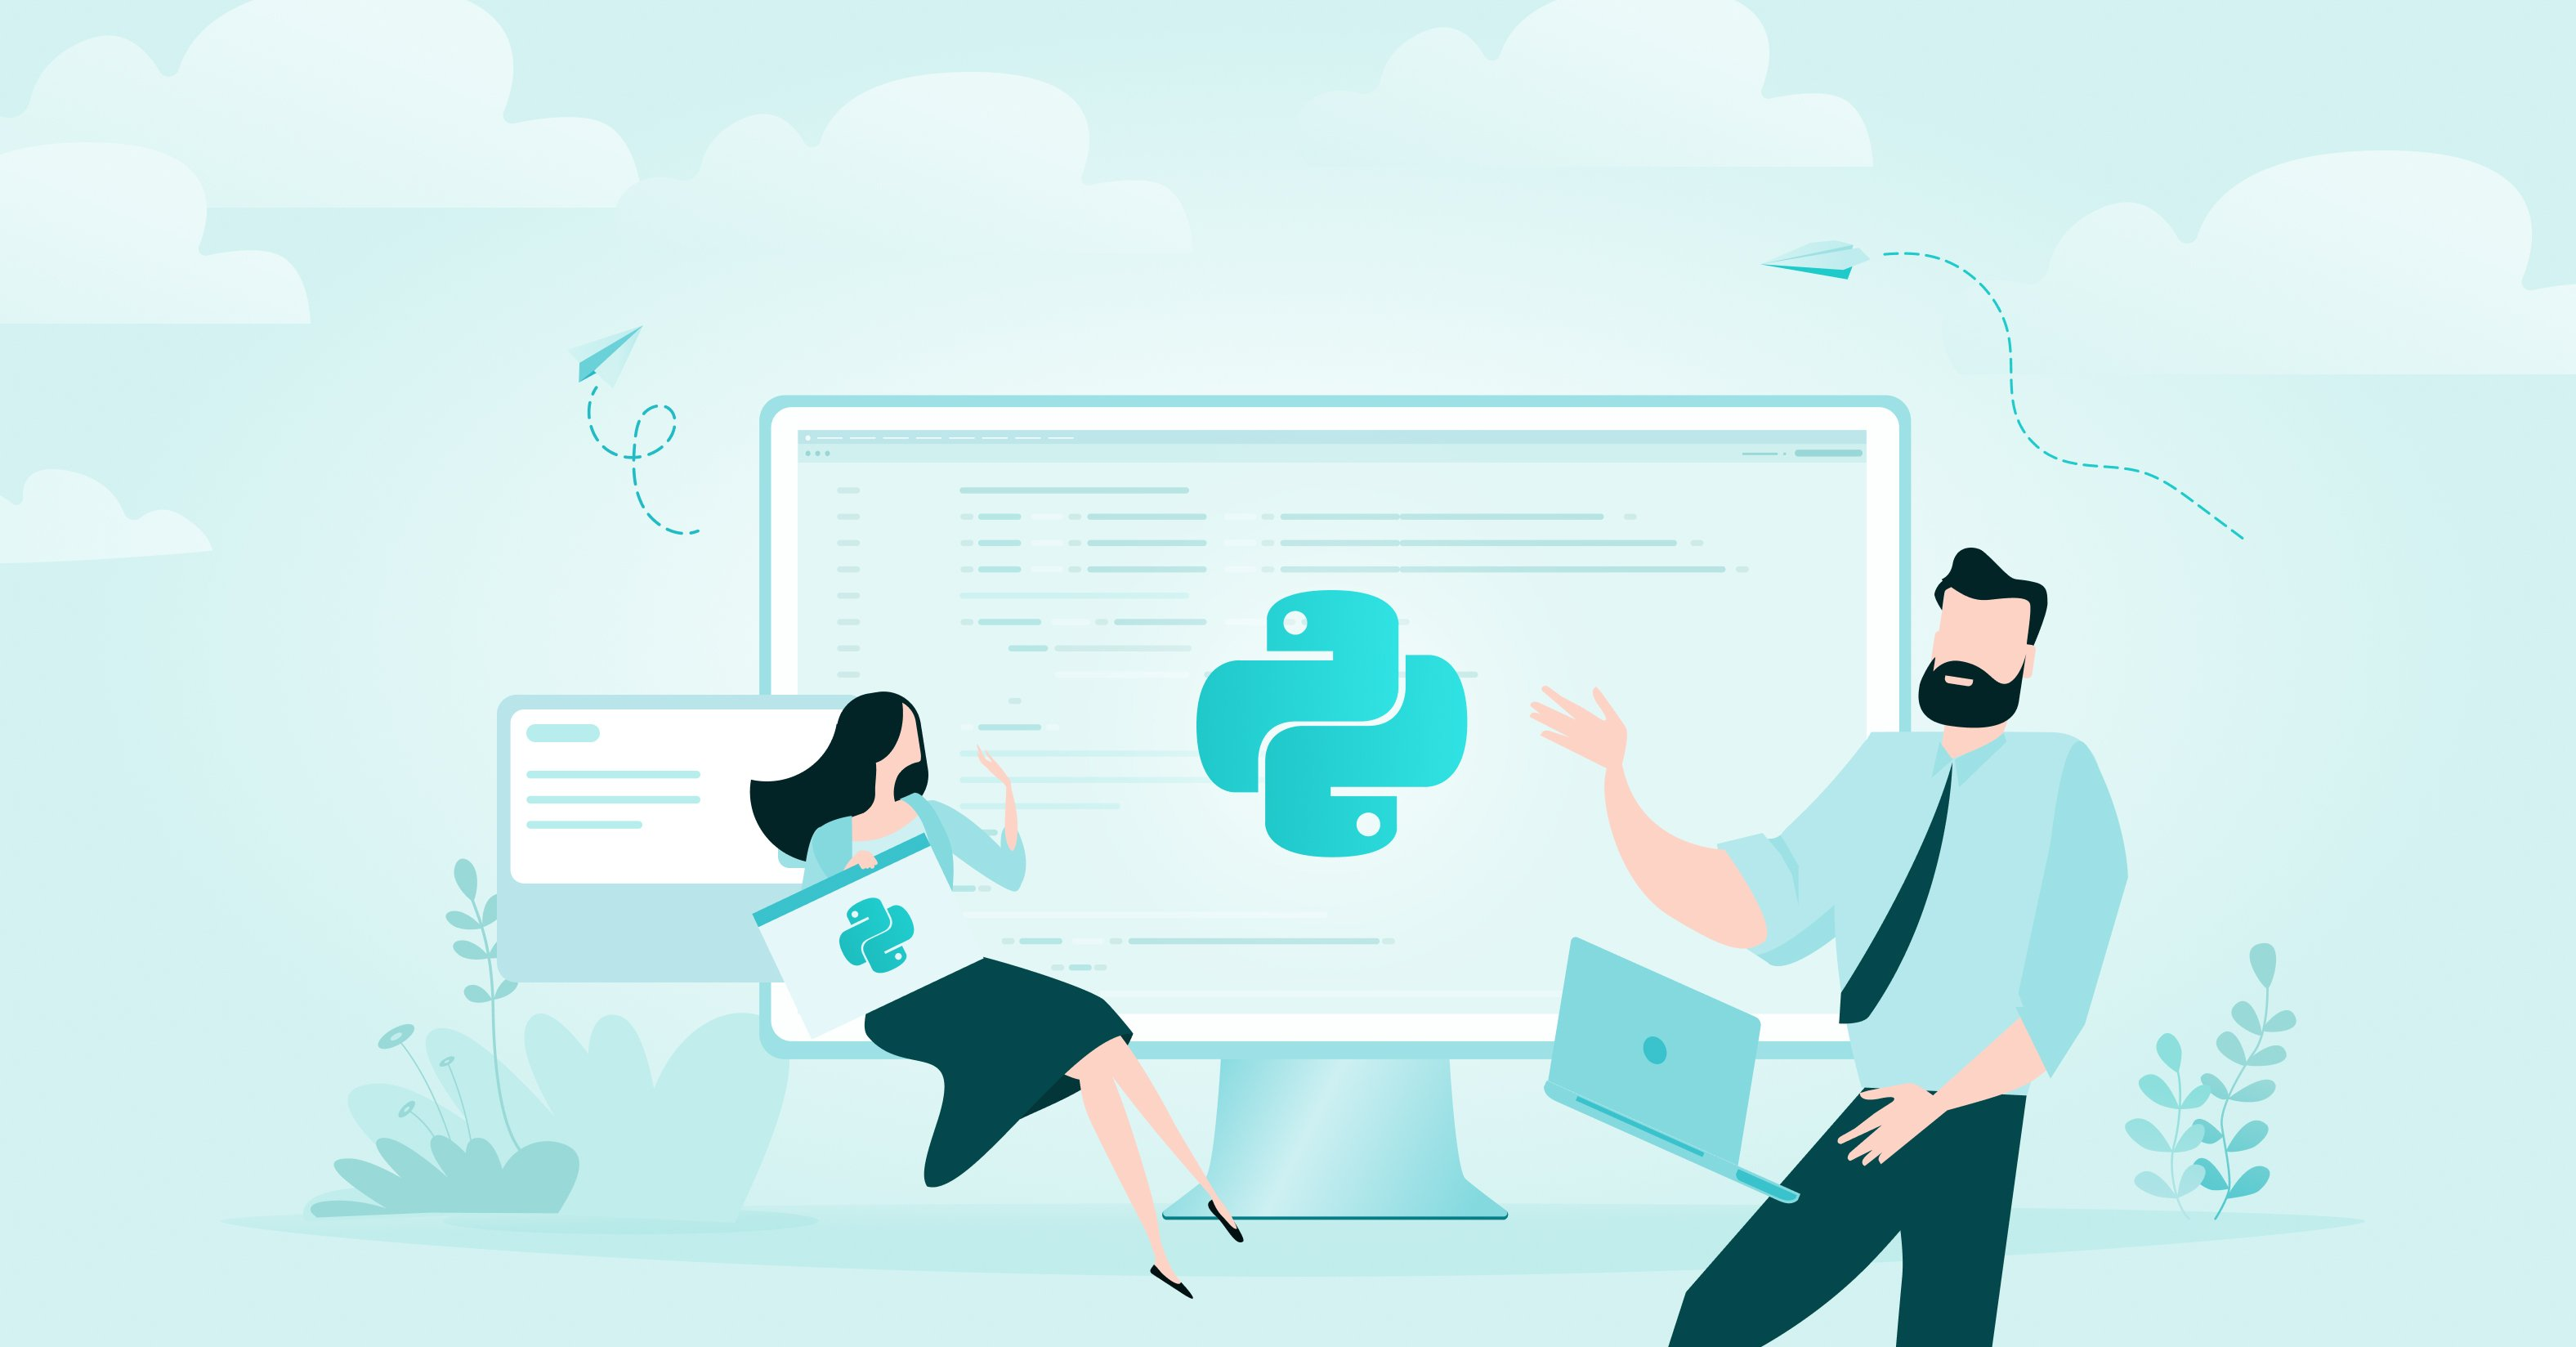 Why Use Python for Web Development